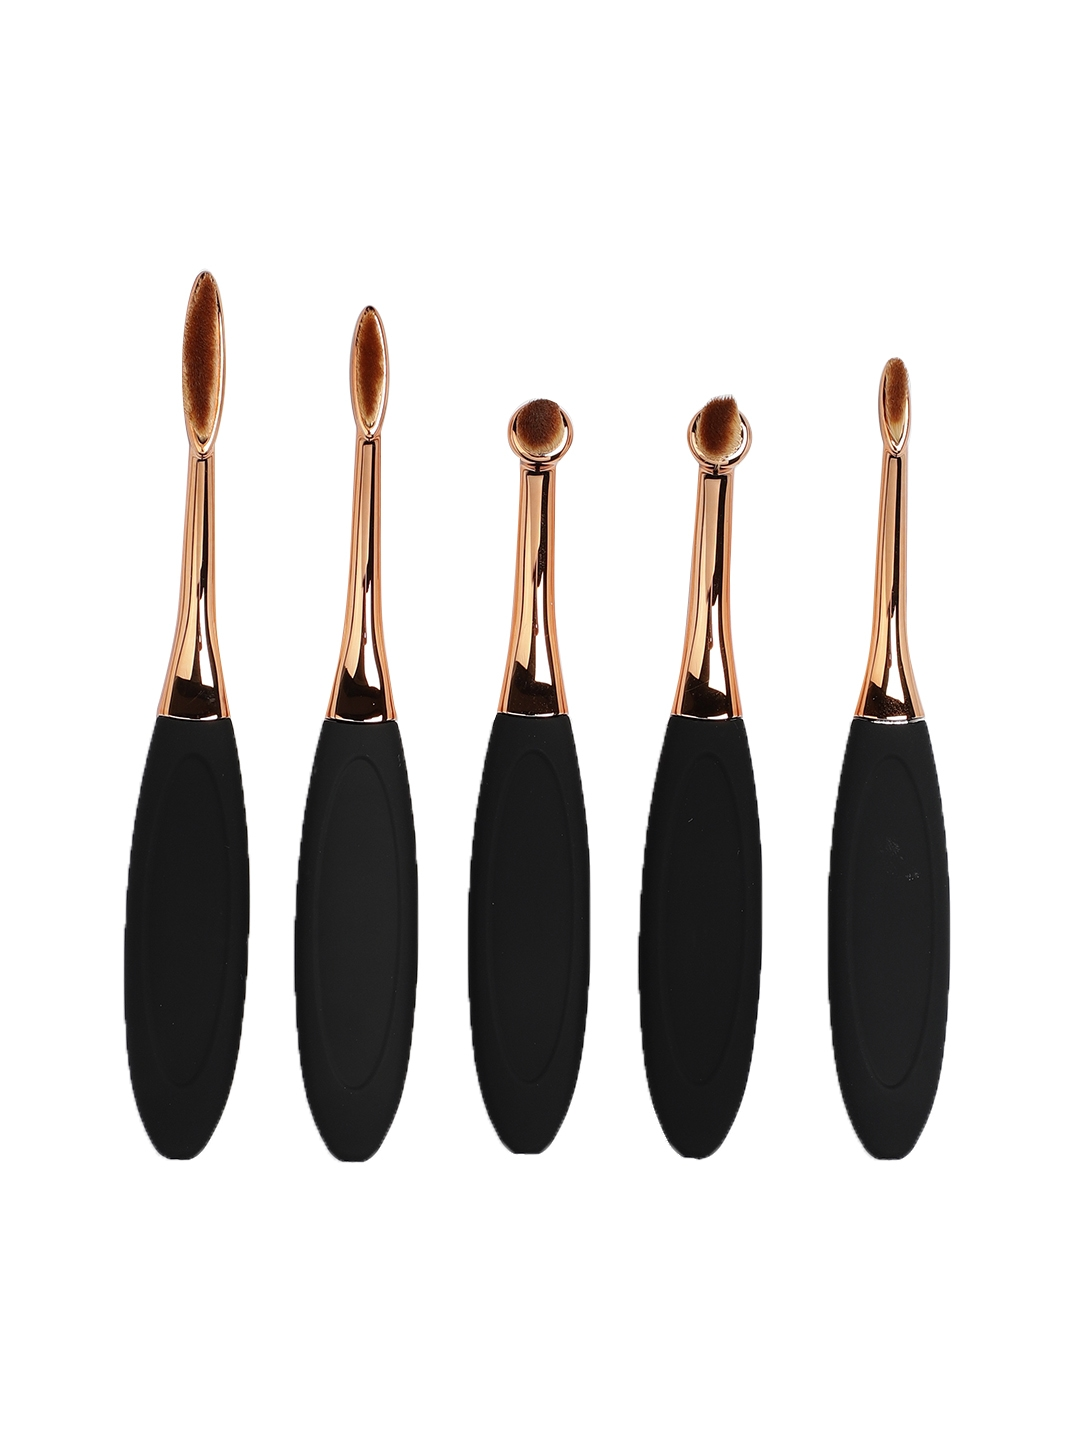 Buy ToniQ Beauty Oval All Eyes On You Makeup Brush Set - Makeup ... 2bfb54c8e7